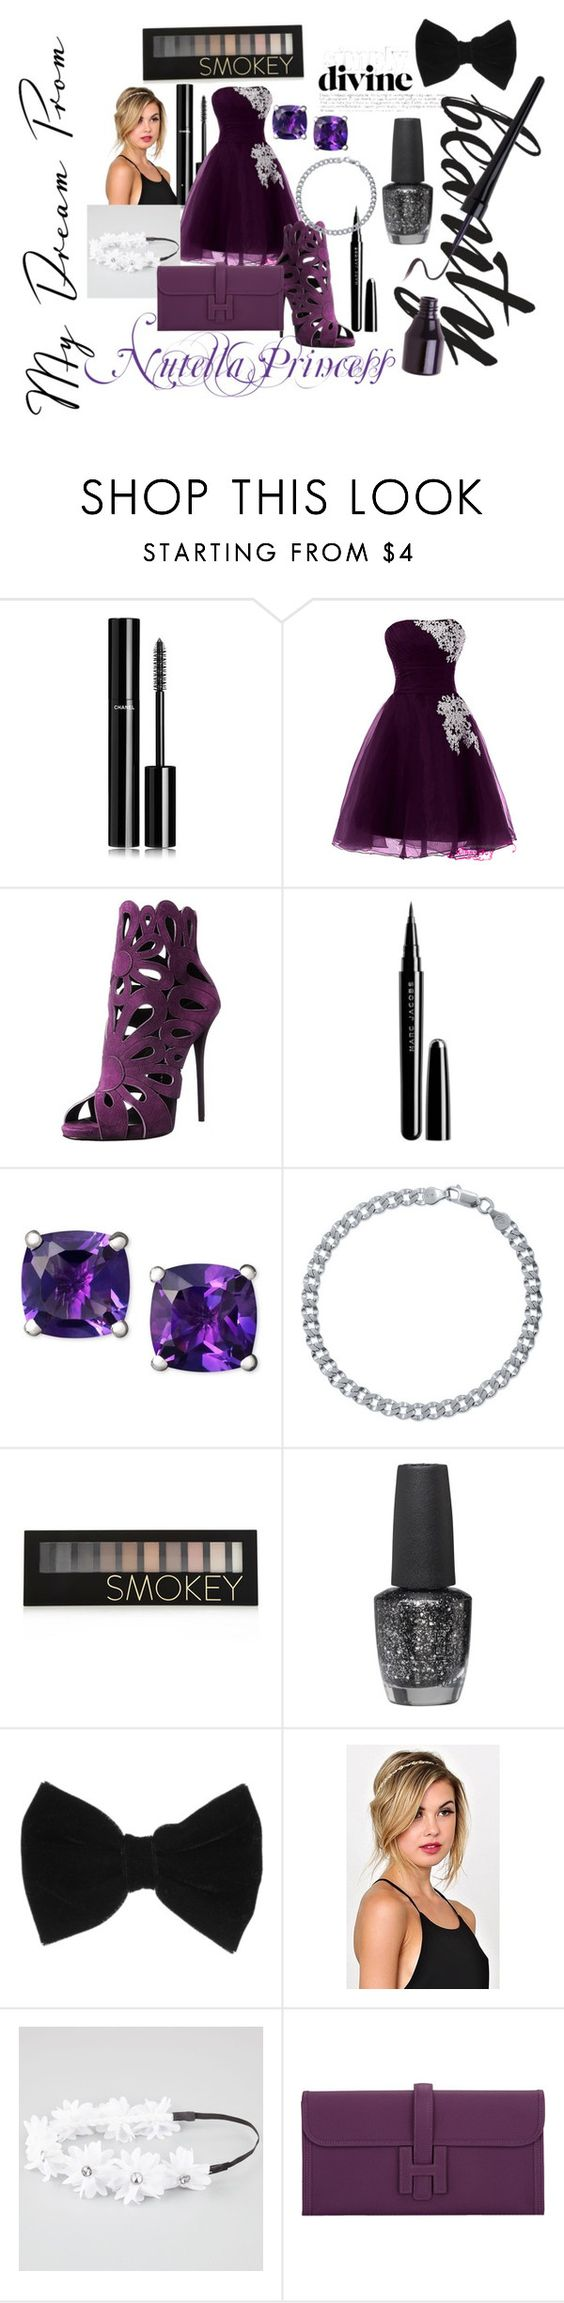 """""""My Dream Prom"""" by queenskittles-aka-the-hobo on Polyvore featuring Chanel, Giuseppe Zanotti, Marc Jacobs, BERRICLE, Forever 21, OPI, claire's, Full Tilt and Hermès"""